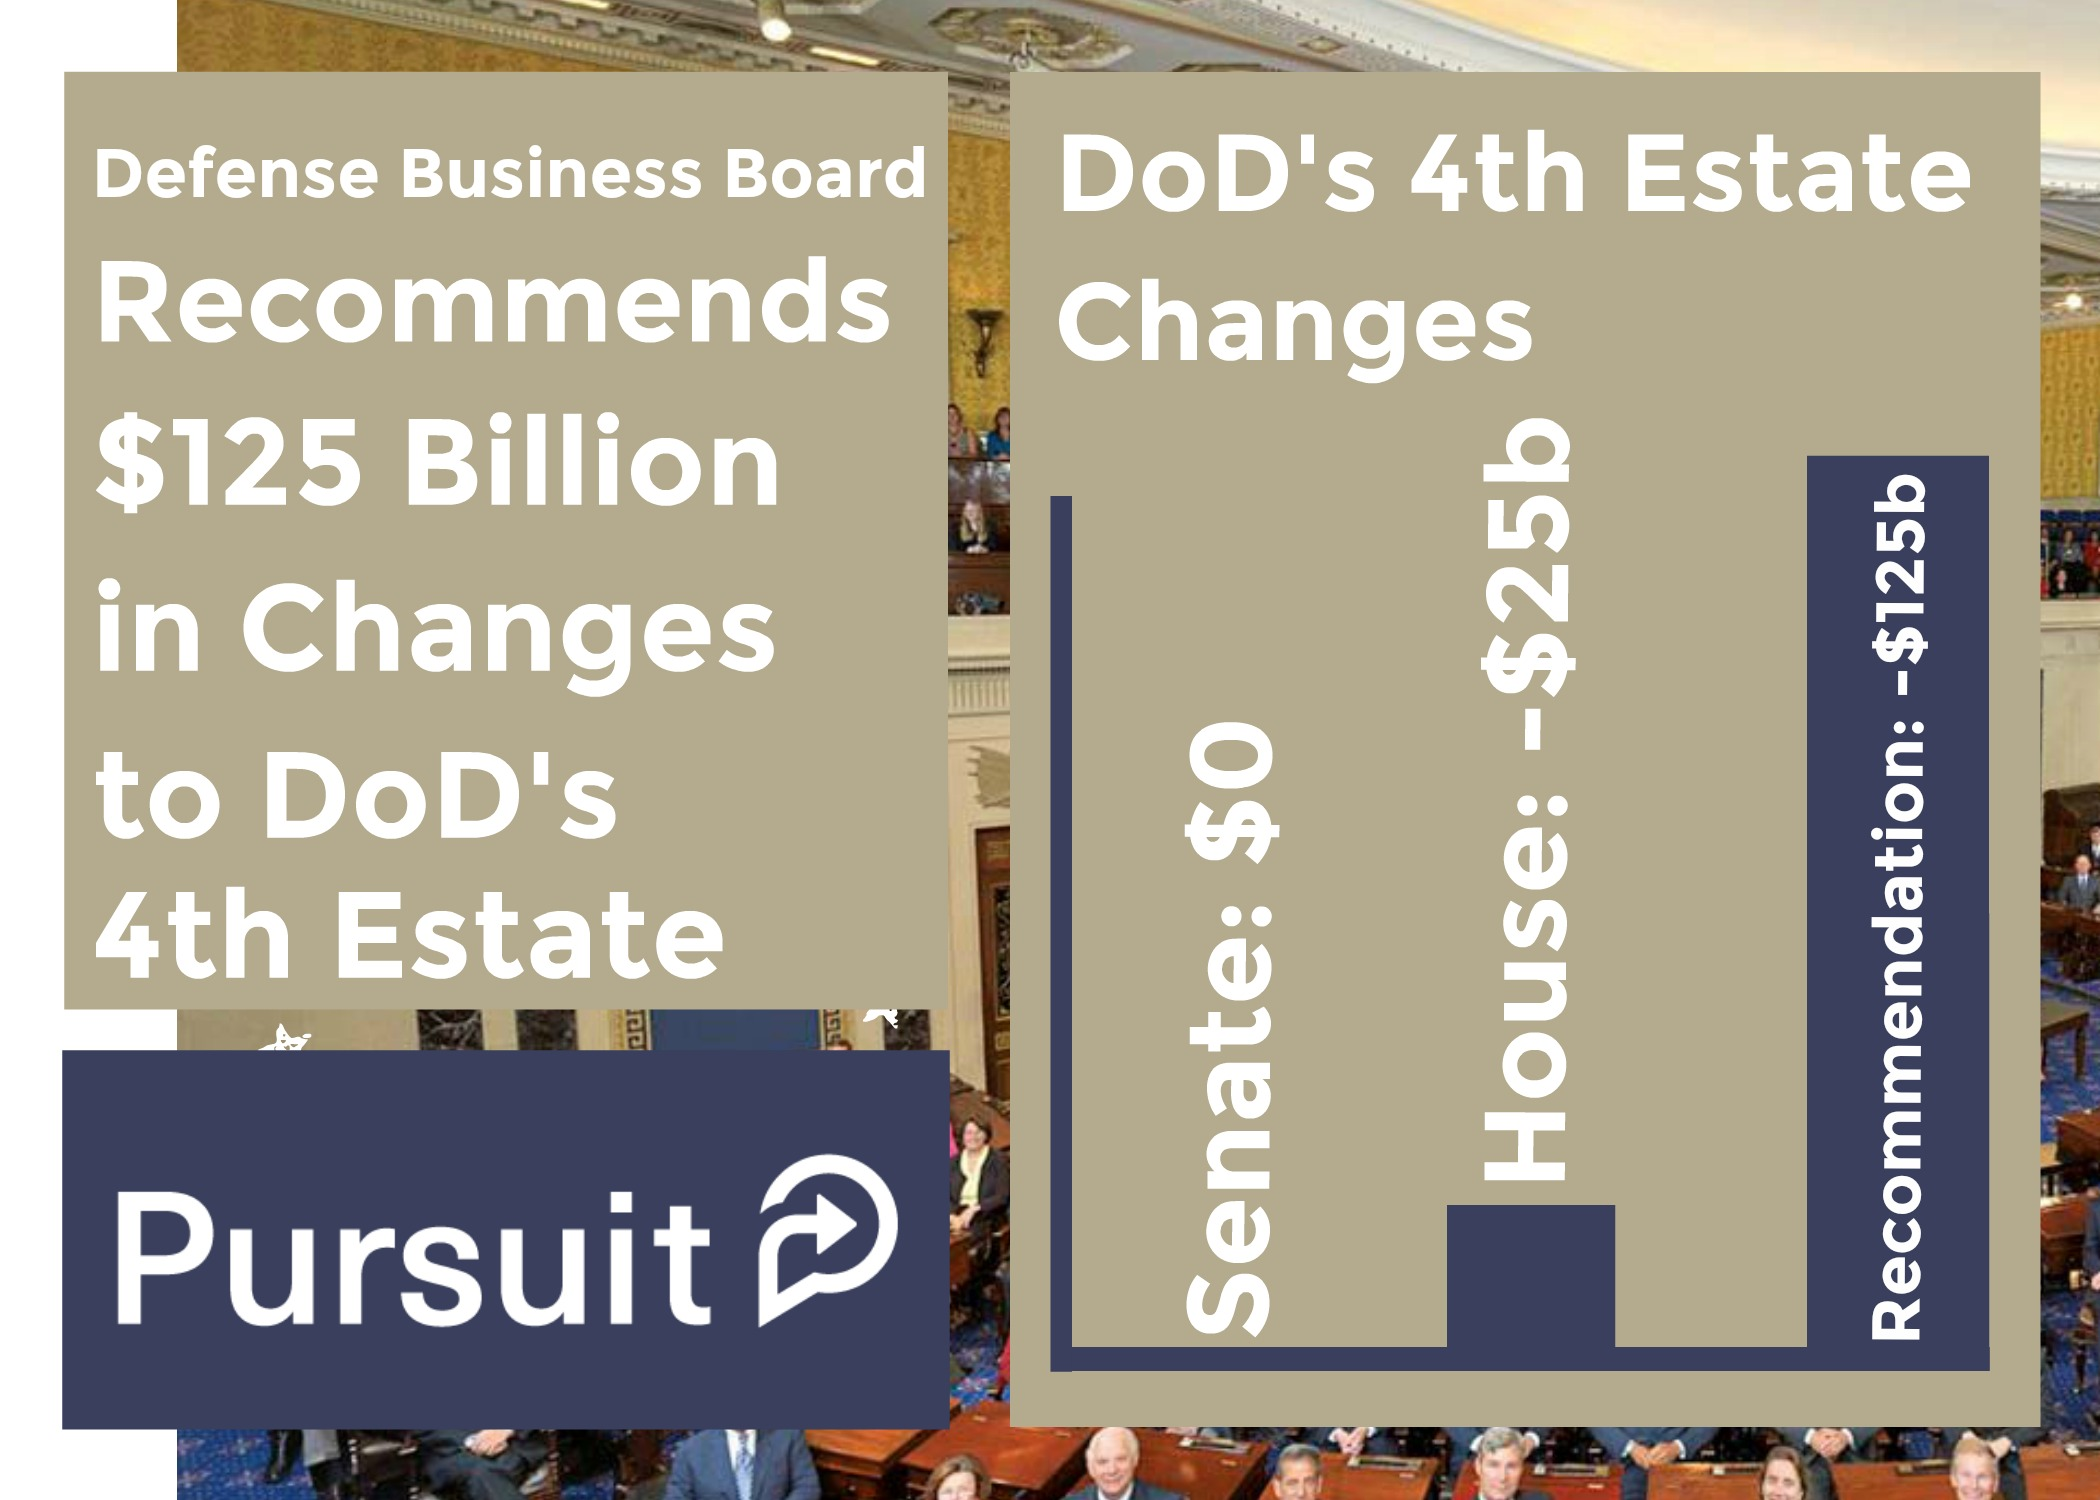 NDAA Defense Business Board